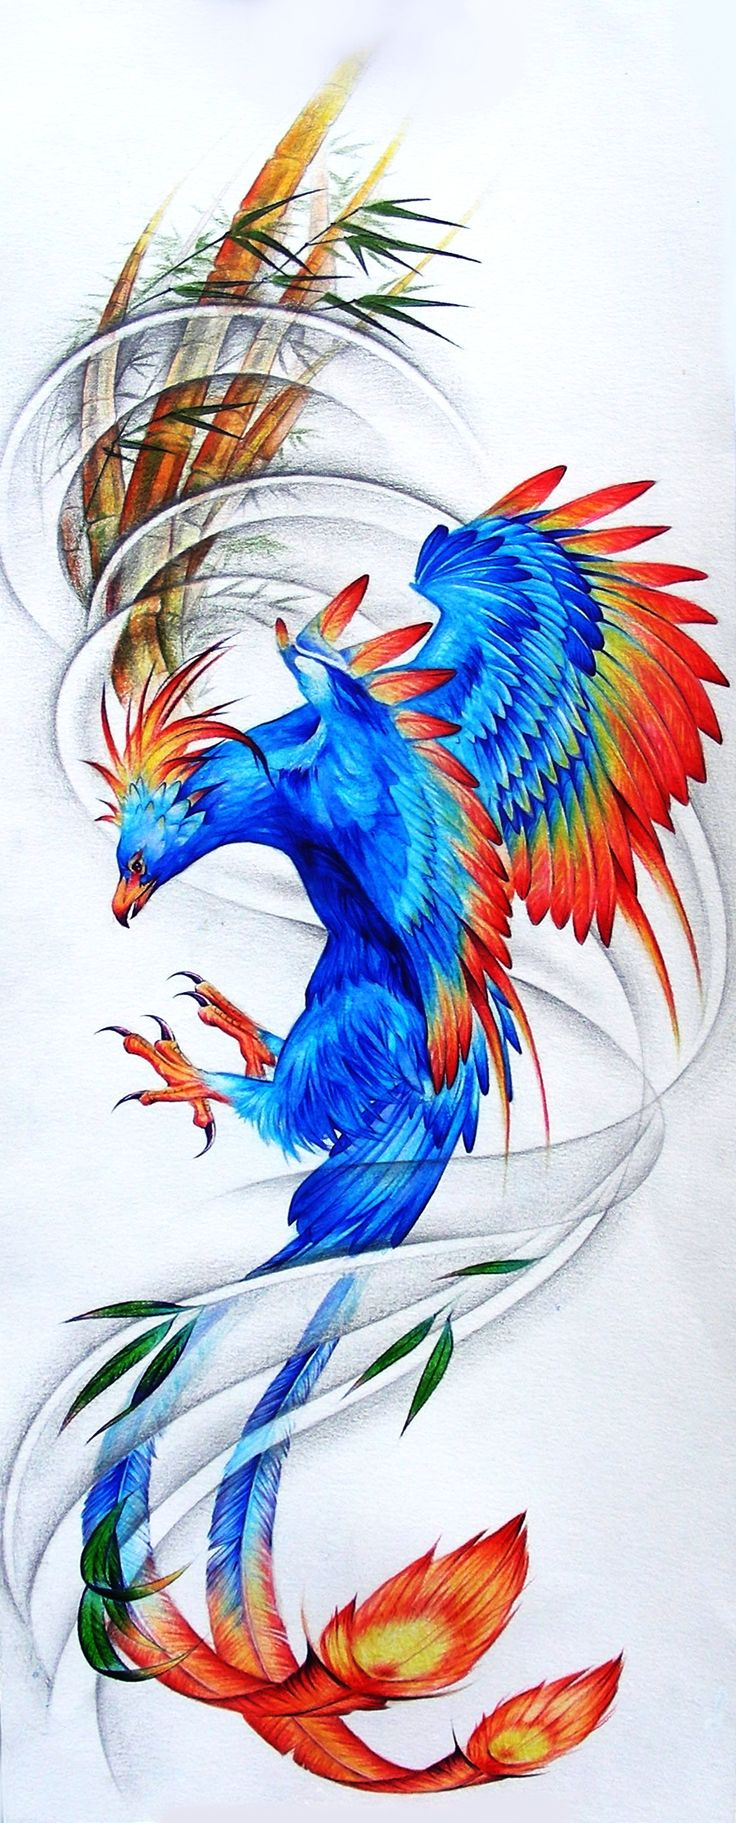 Colorful phoenix tattoo designs - Acrylic Painting Prismacolor And Other Stuff Tattoo Design For Ribs Phoenix